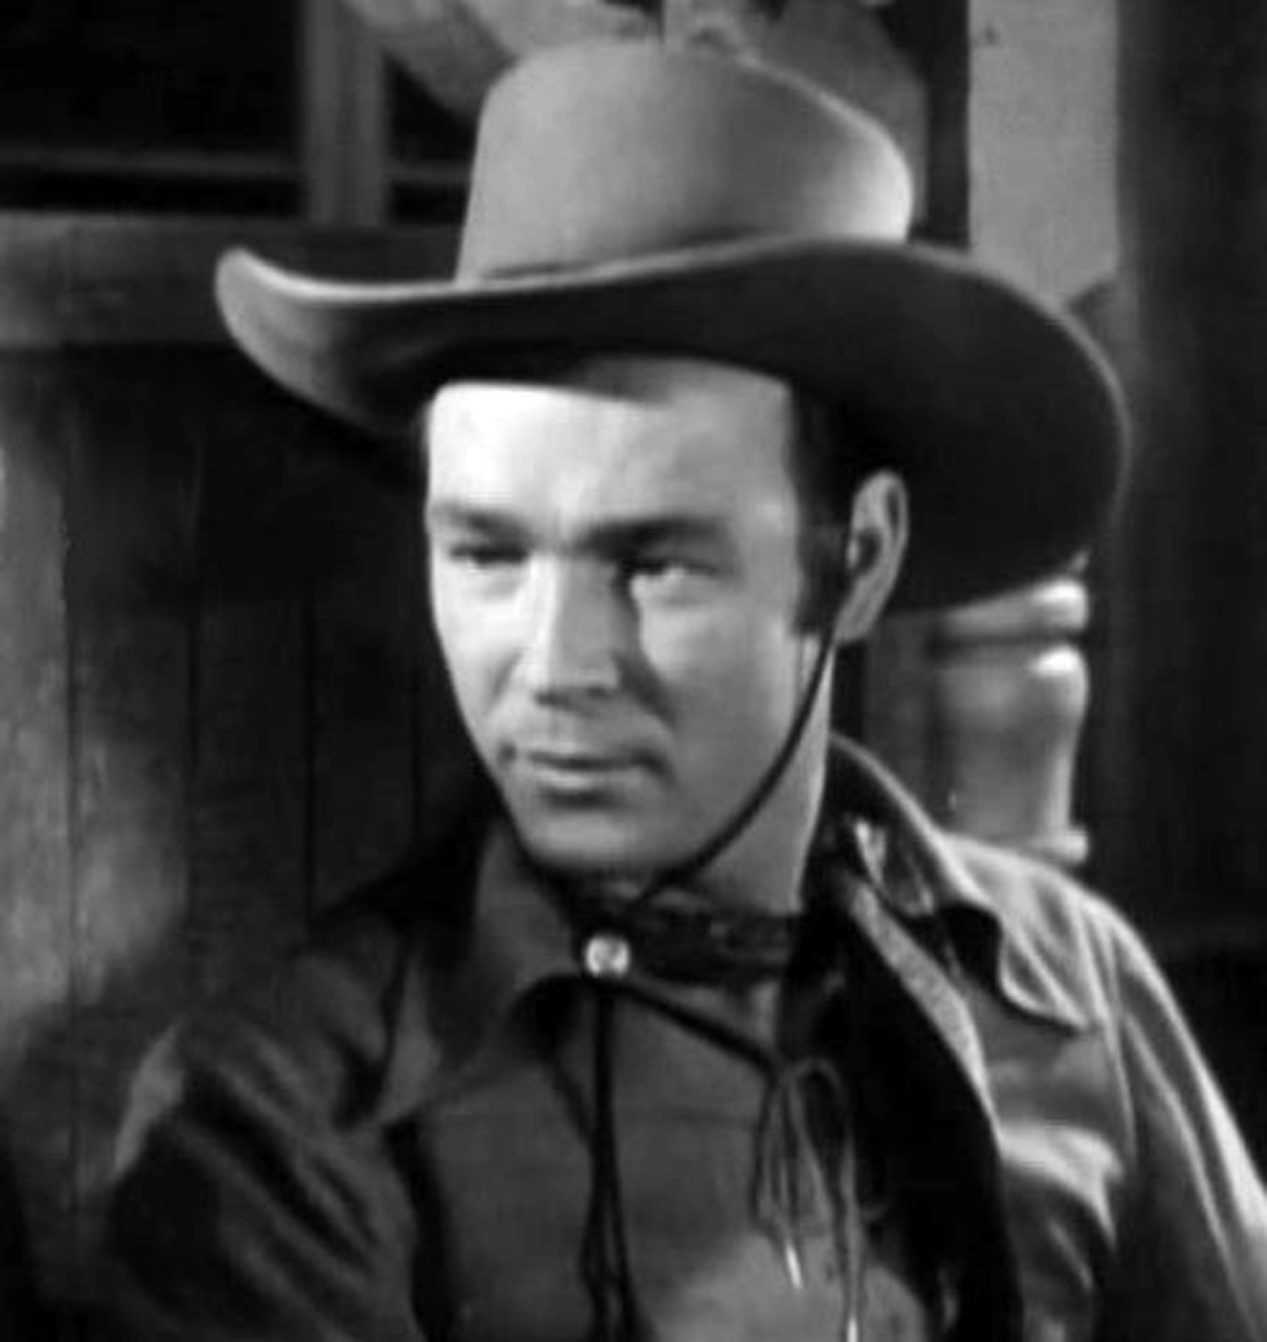 Roy rogers in the carson city kid 1